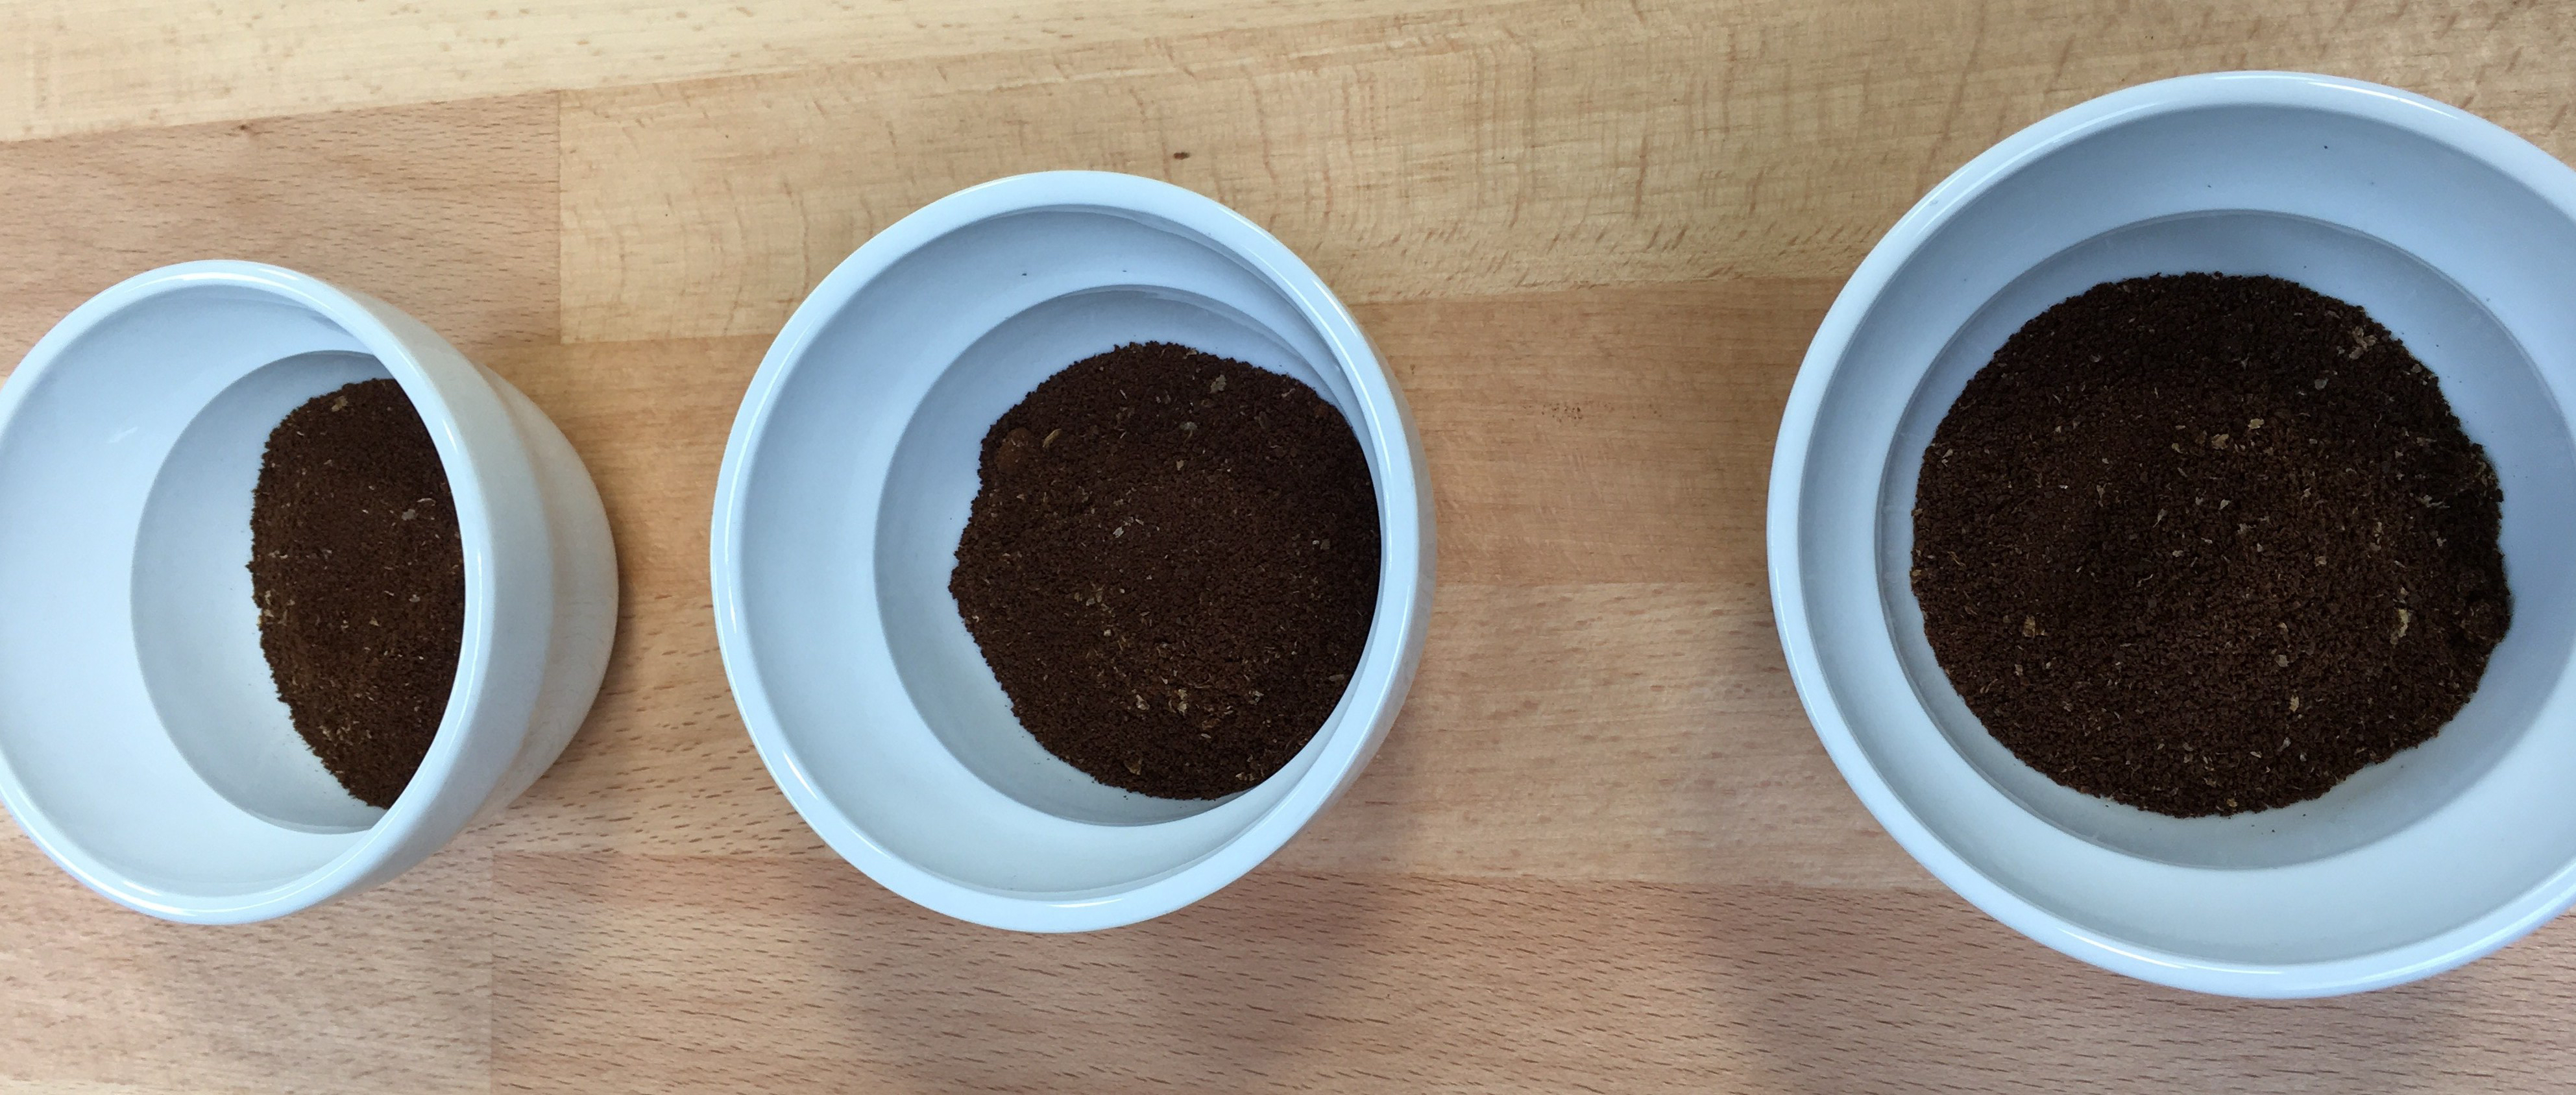 Ground Coffee: The Results via @carvetiicoffee